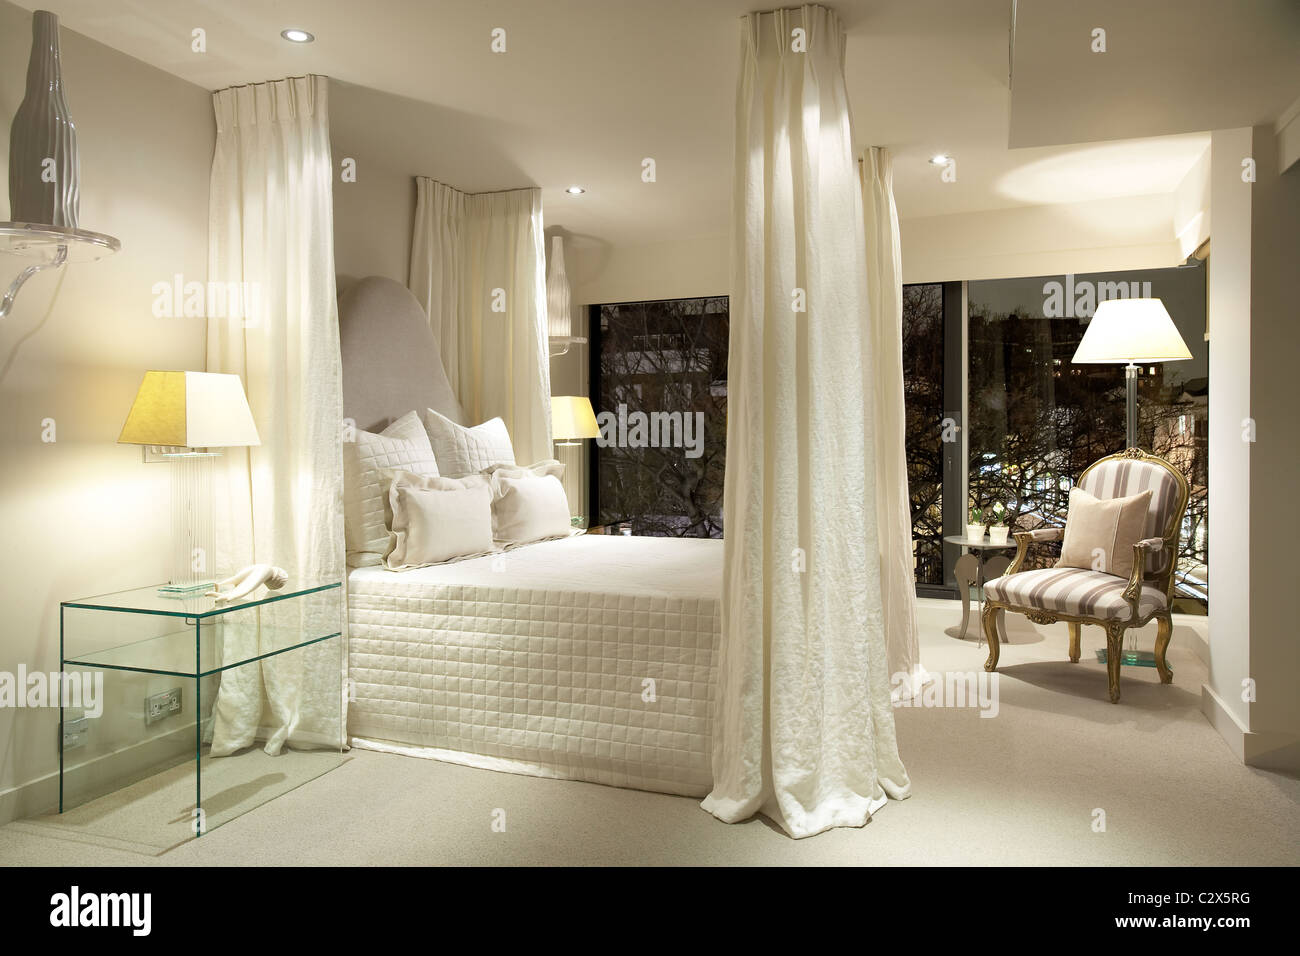 Michael Reeves designer interiors Stock Photo